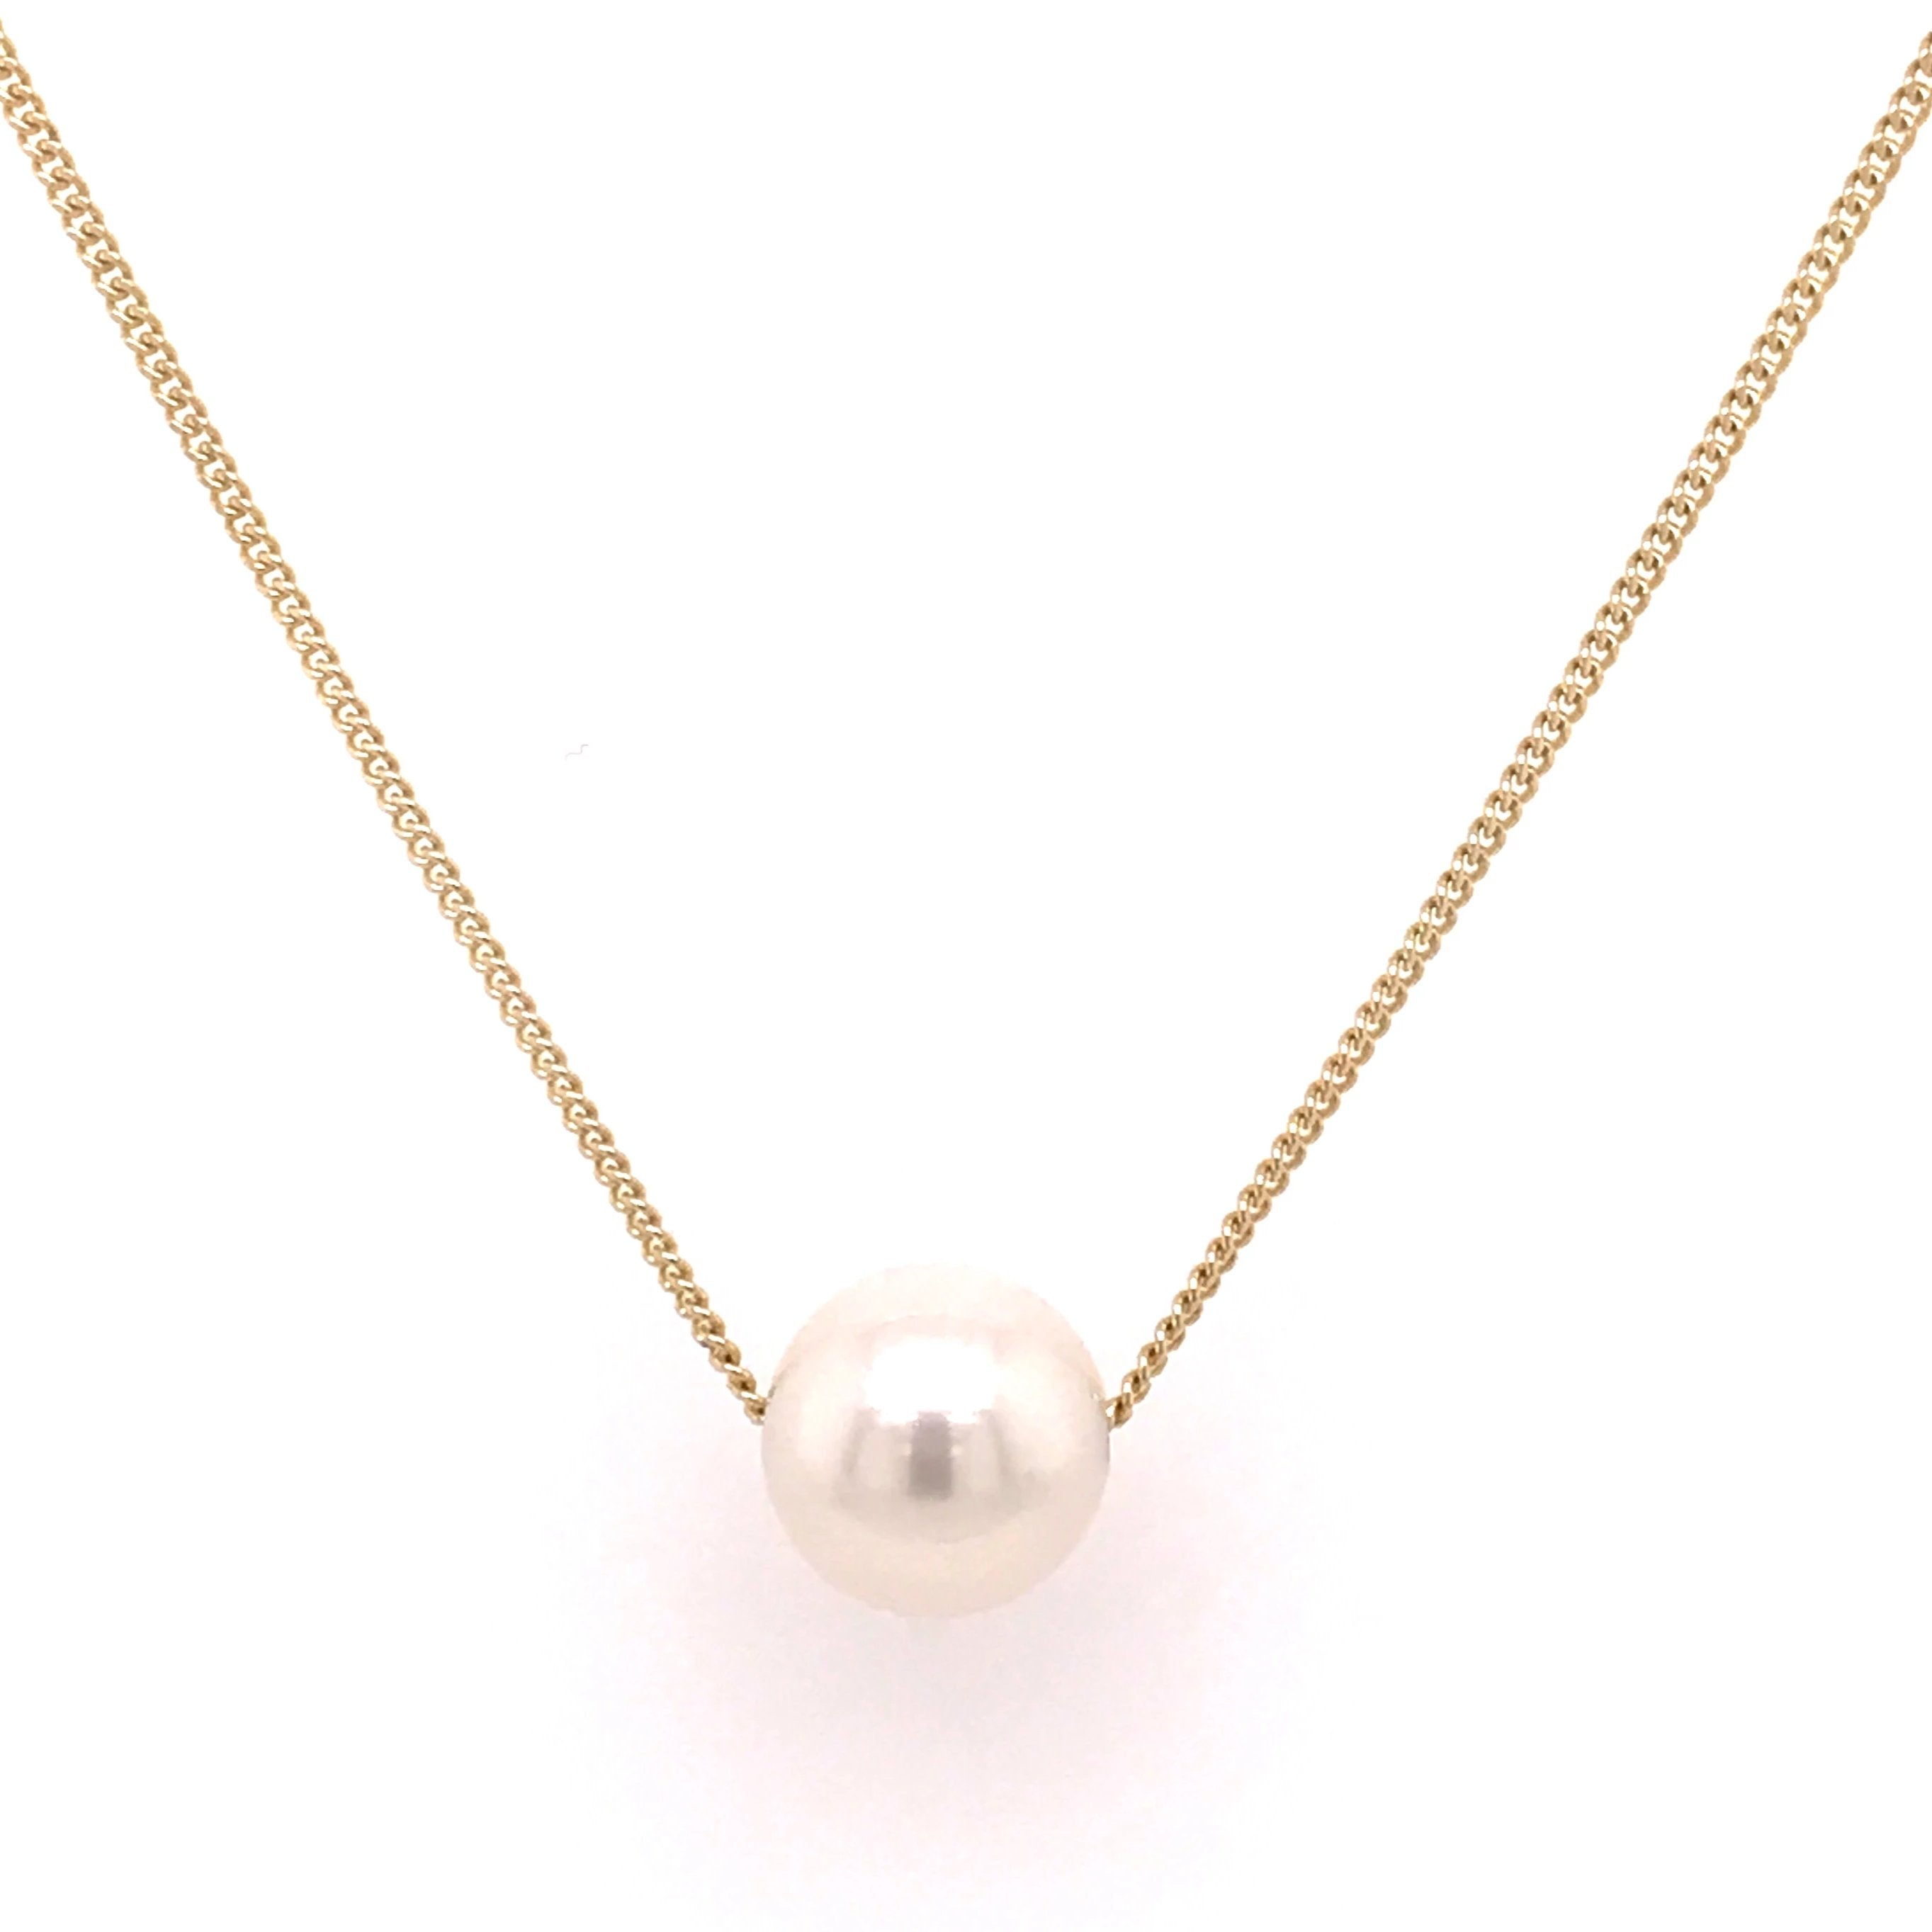 9ct Yellow Gold White Freshwater Slider Necklace - Andrew Scott